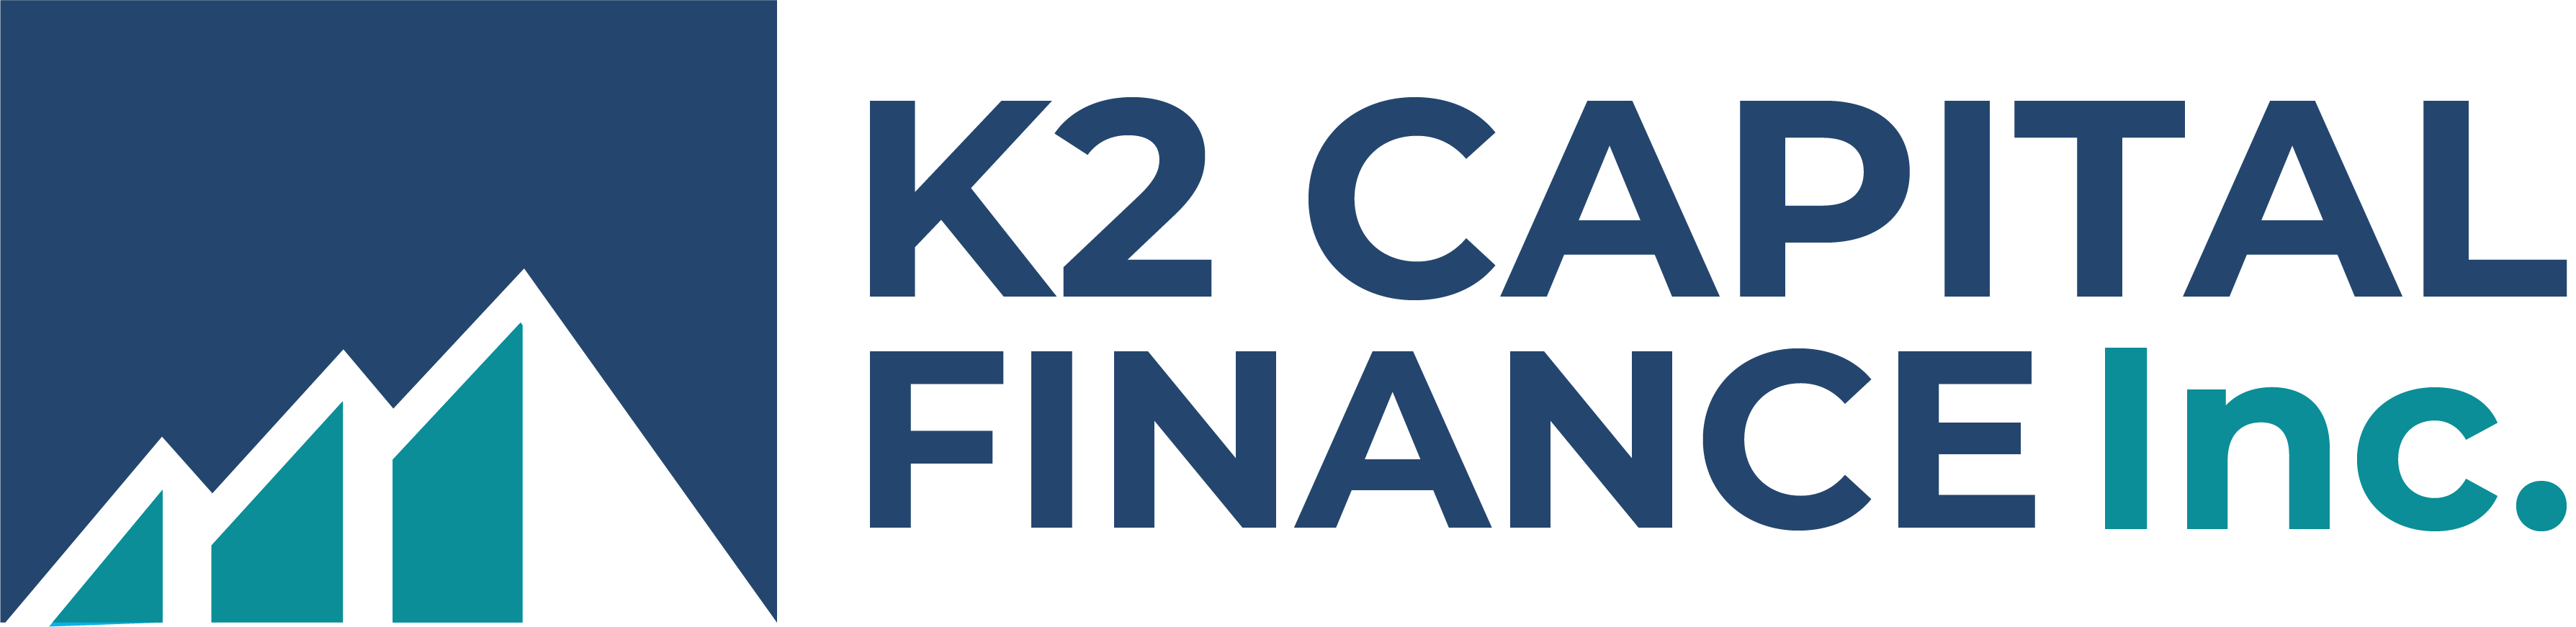 K2 Capital Finance, Inc.